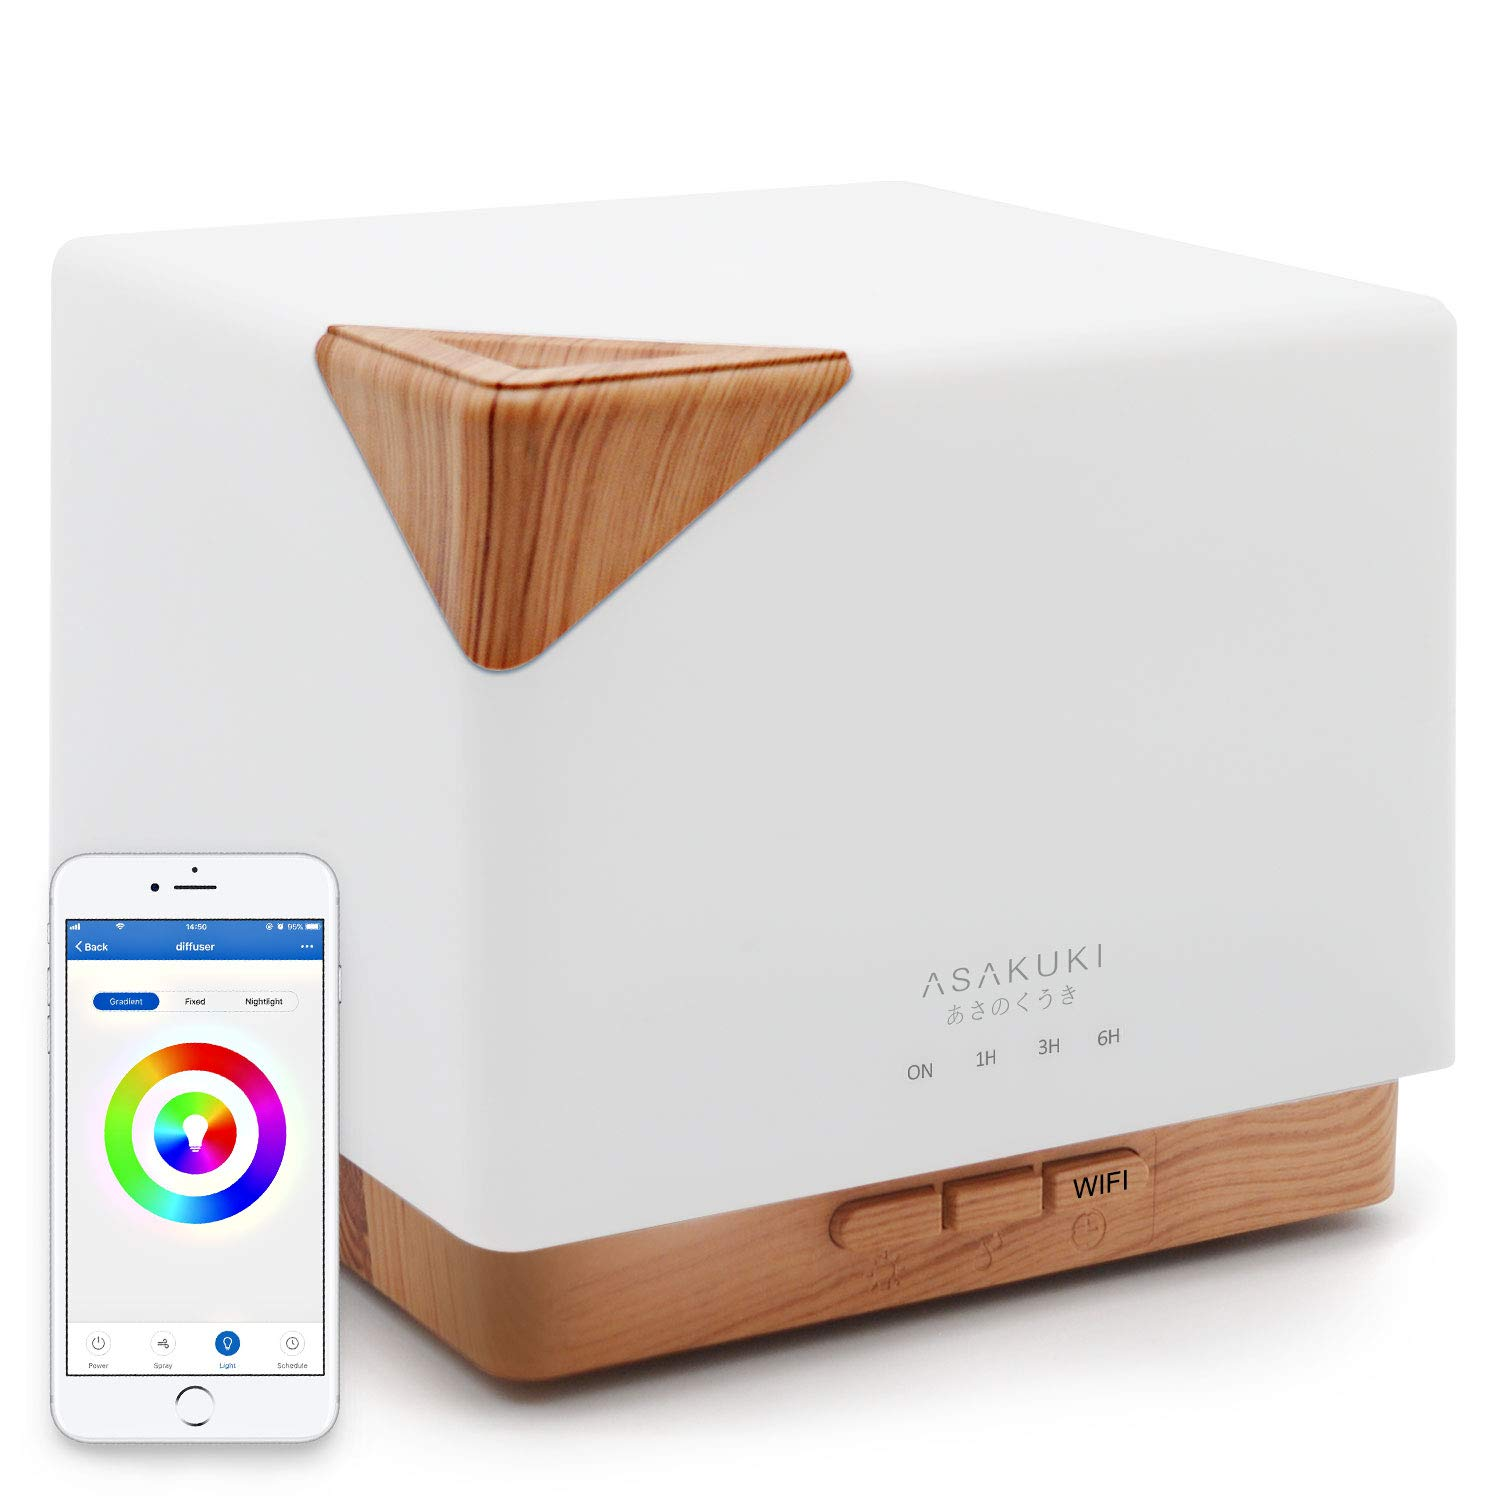 ASAKUKI Smart Wi-Fi Essential Oil Diffuser- App Control Compatible with Alexa, 700ml Aroma Humidifier for Relaxing Atmosphere in Bedroom and Office-Better Sleeping&Breathing by ASAKUKI